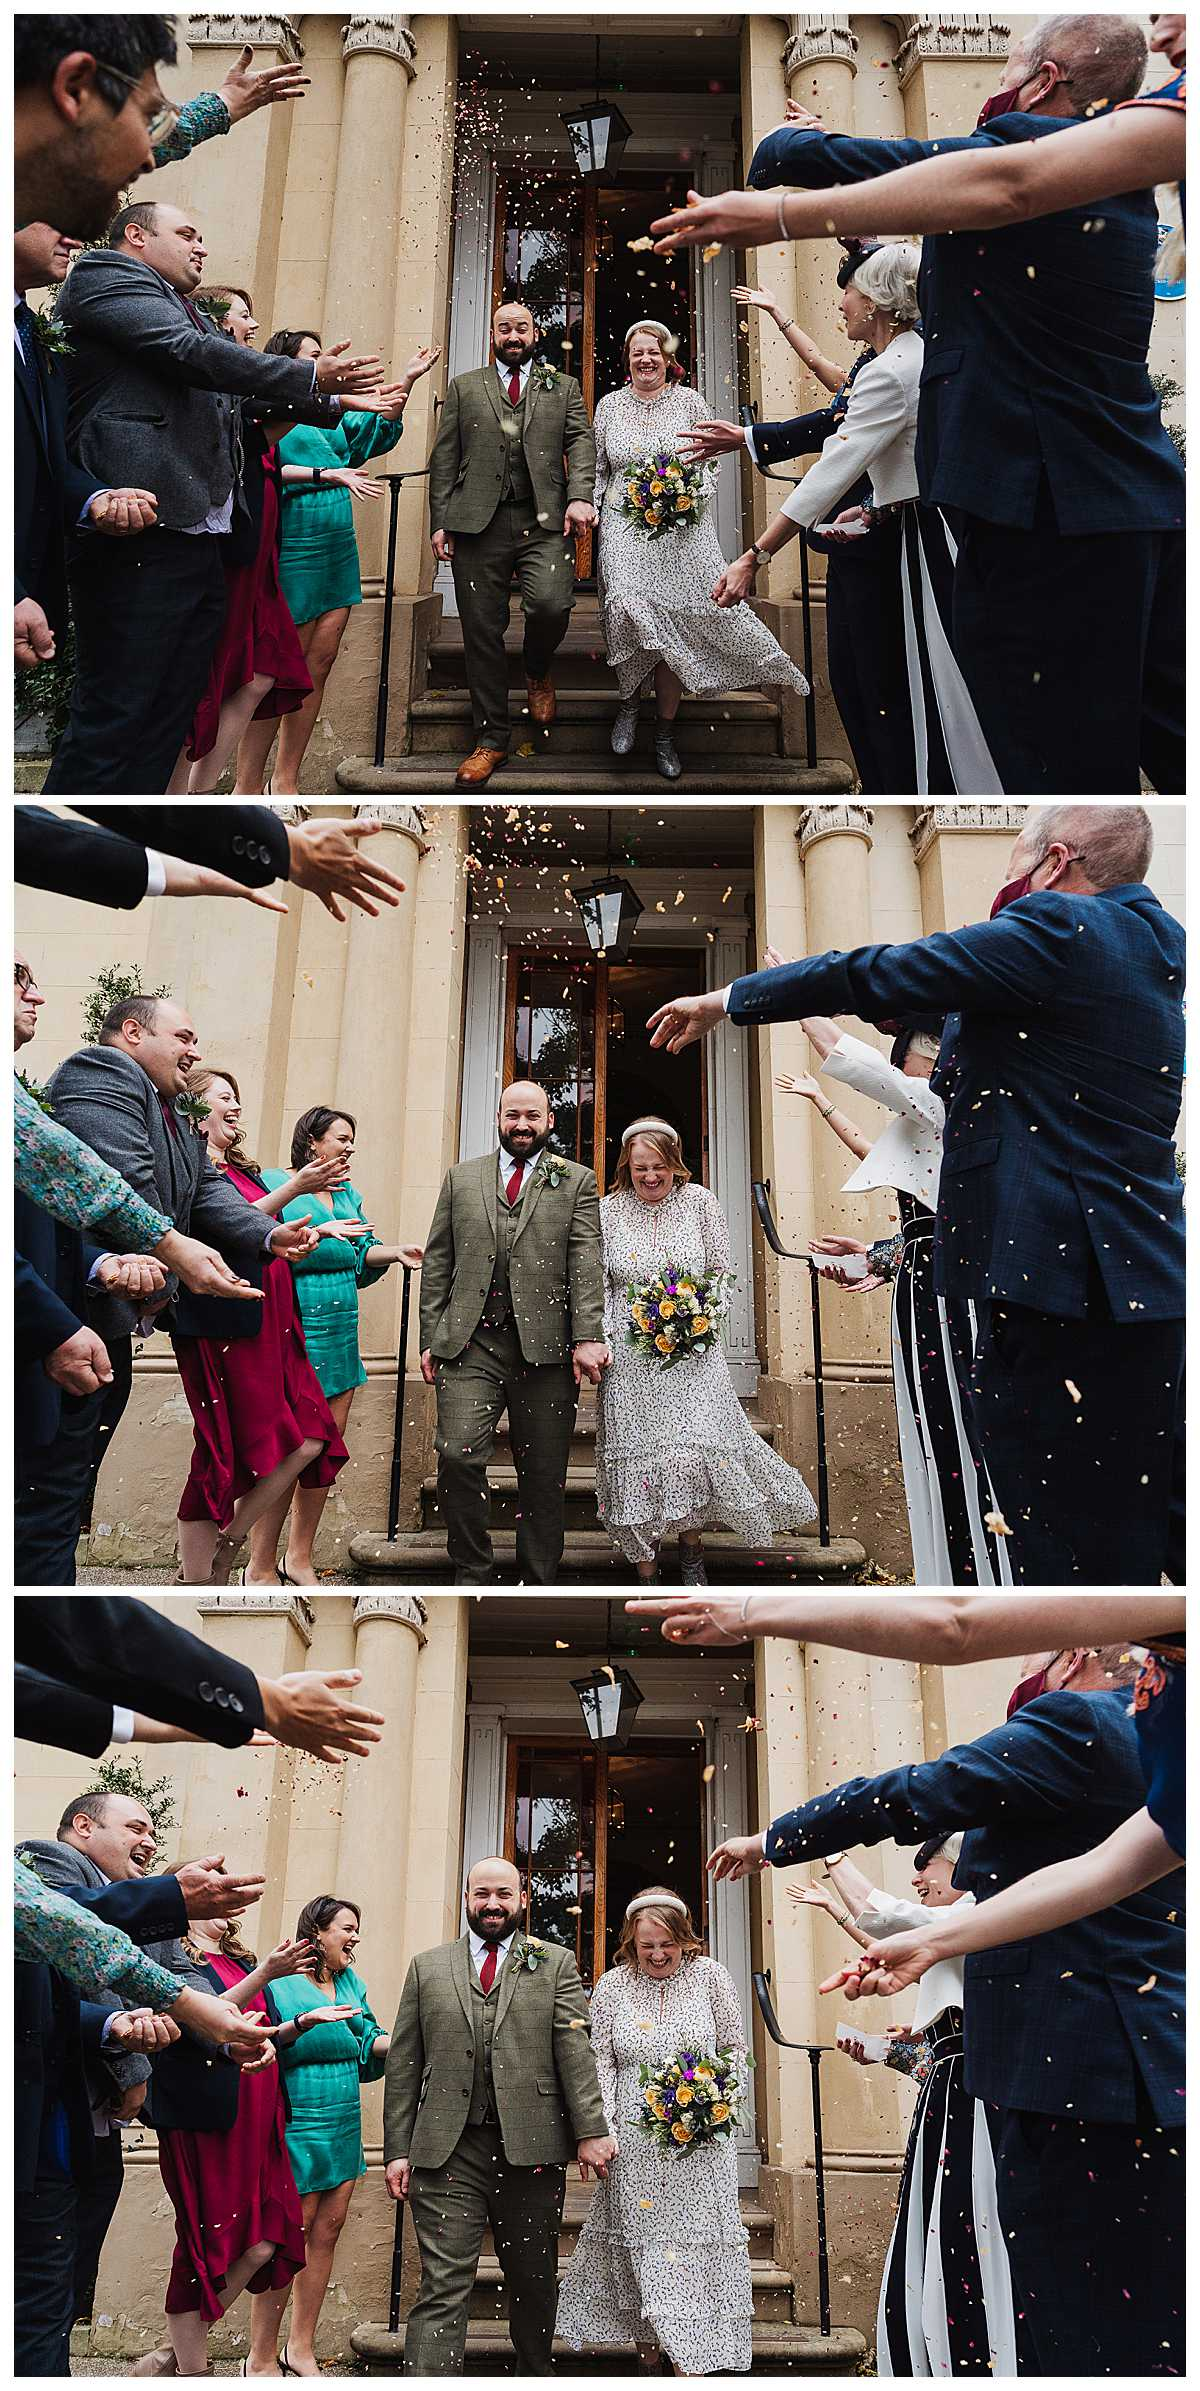 confetti explosion over the bride and groom outside manchester wedding venue, charlotte giddings photography